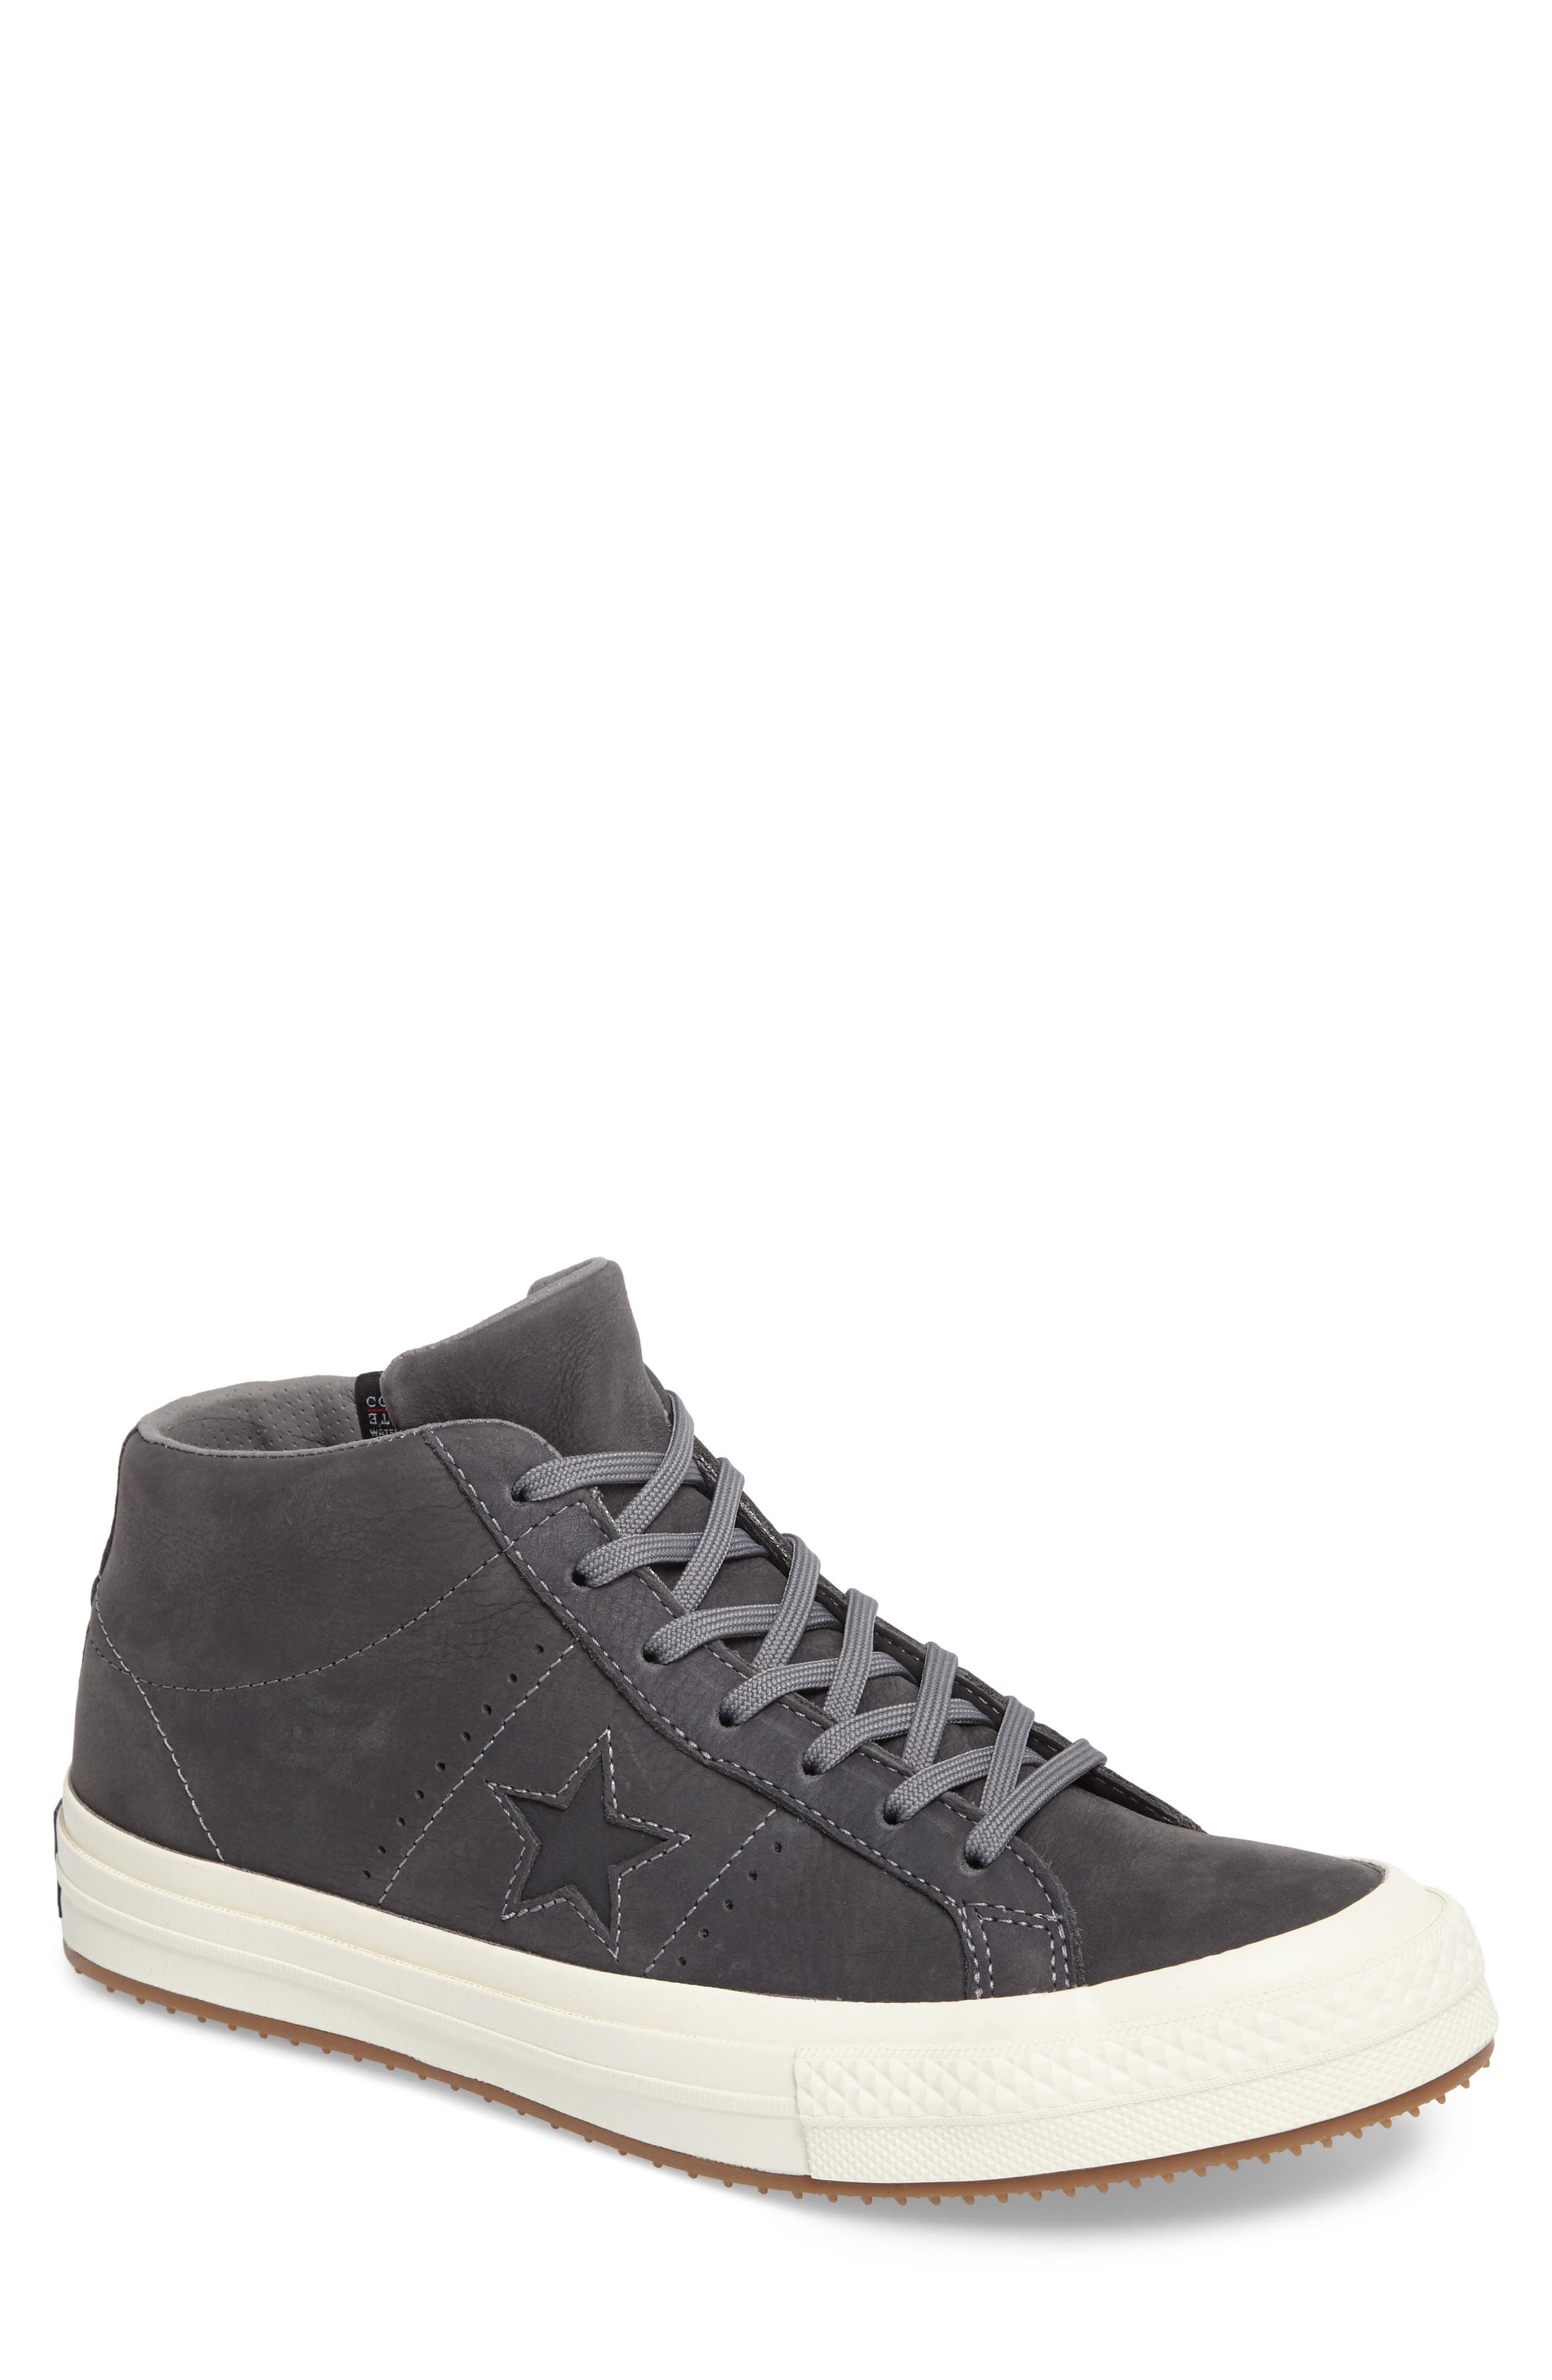 Alternate Image 1 Selected - Converse One Star Mid Sneaker (Men)